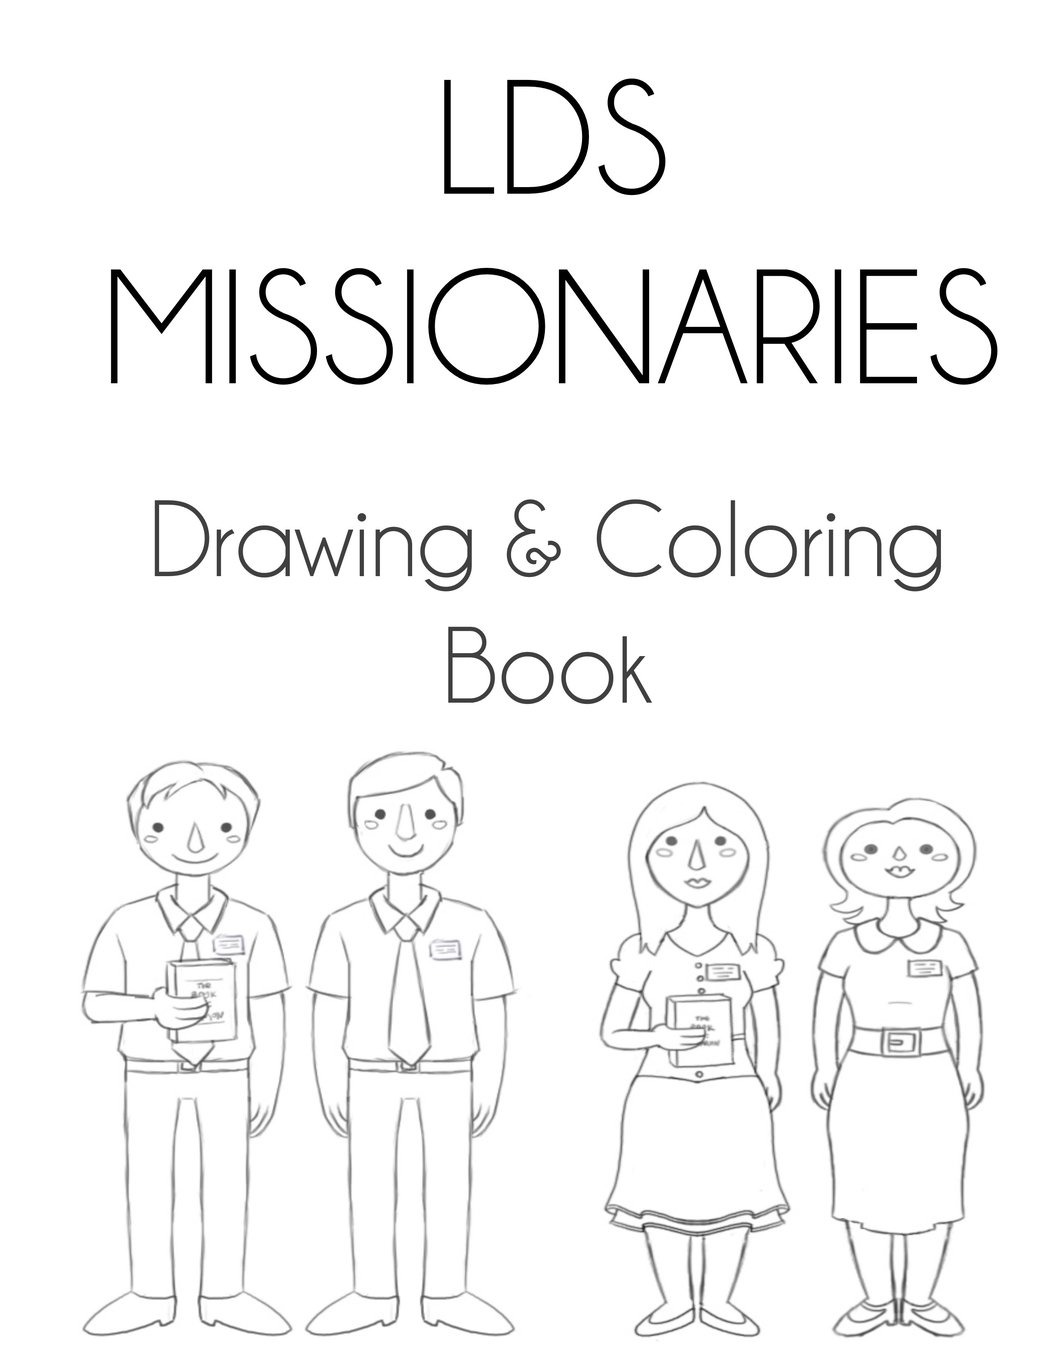 Lds Missionaries  Drawing & Coloring Book  Sarie Smith